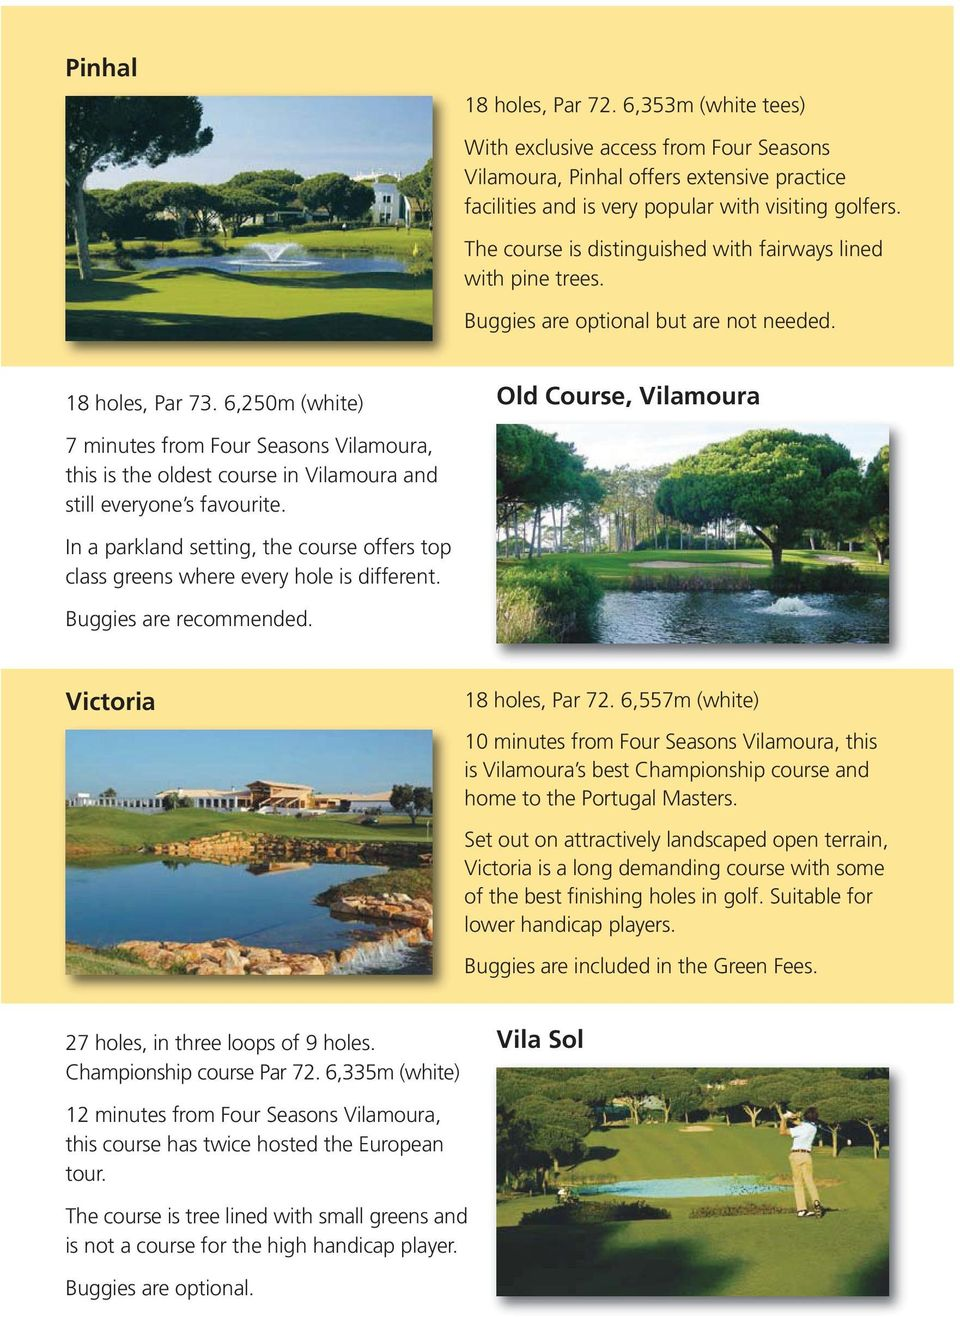 6,250m (white) Old Course, Vilamoura 7 minutes from Four Seasons Vilamoura, this is the oldest course in Vilamoura and still everyone s favourite.